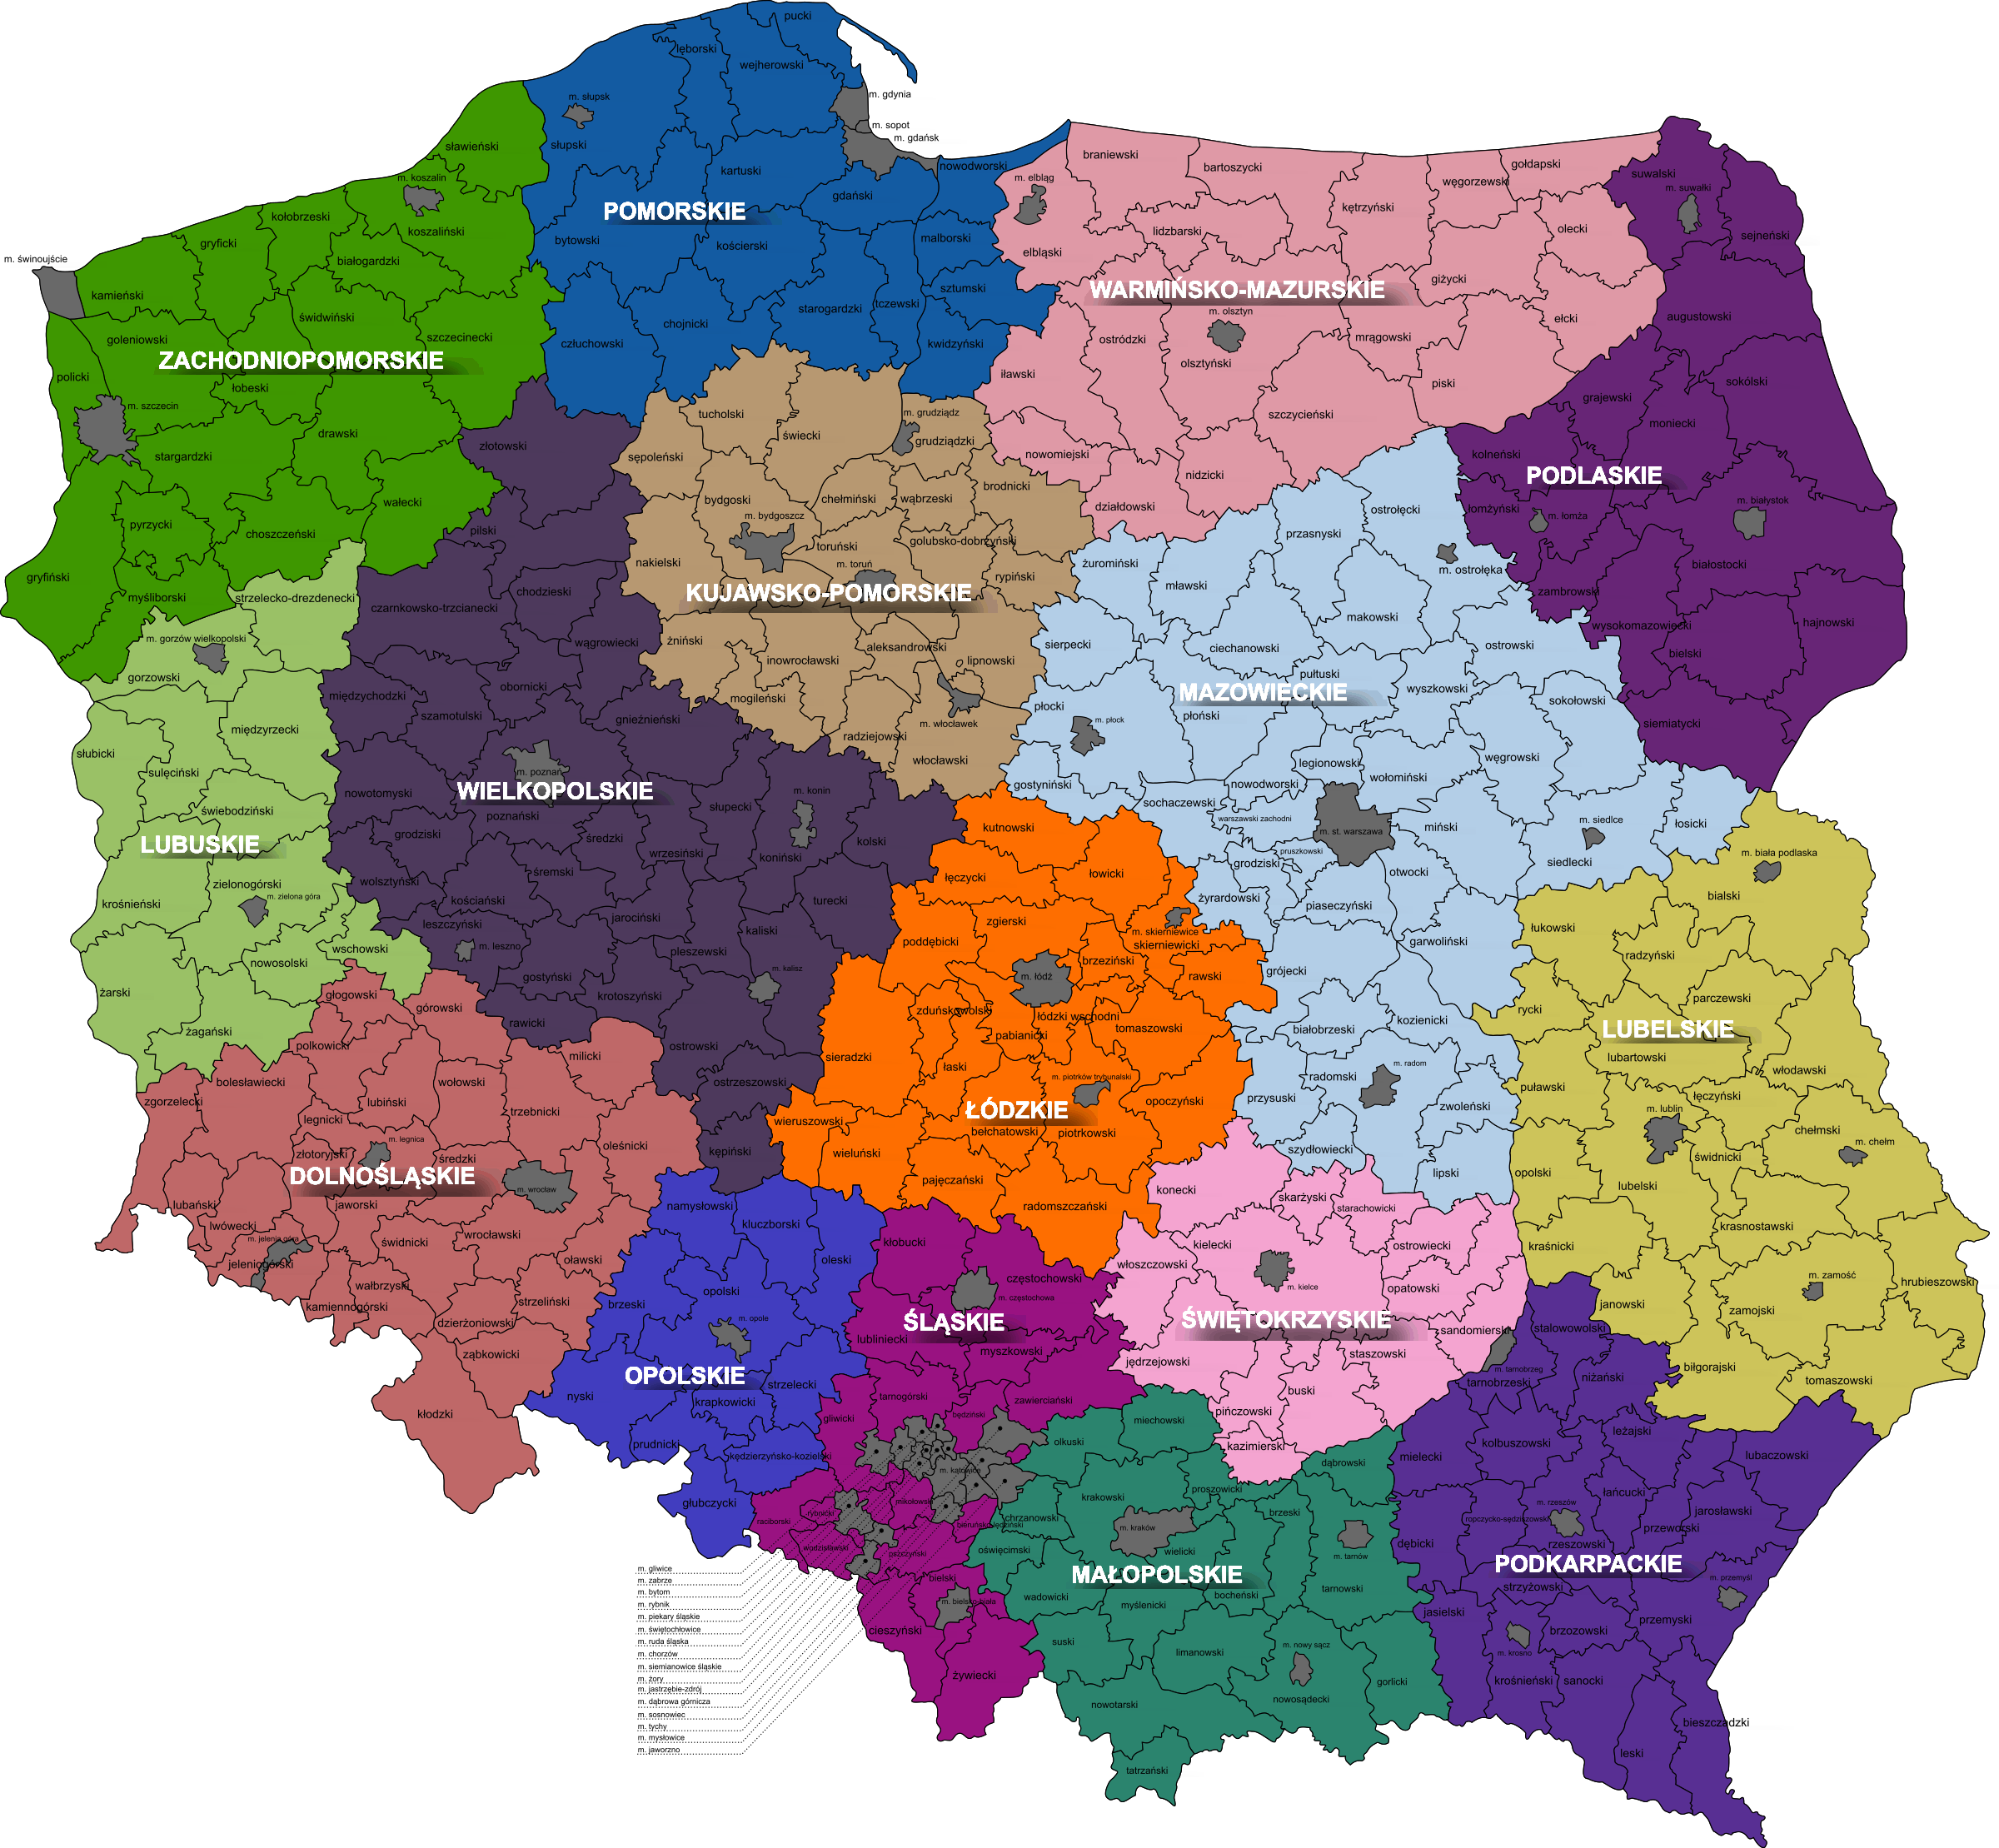 Poland, voivodeship, district by sun ny